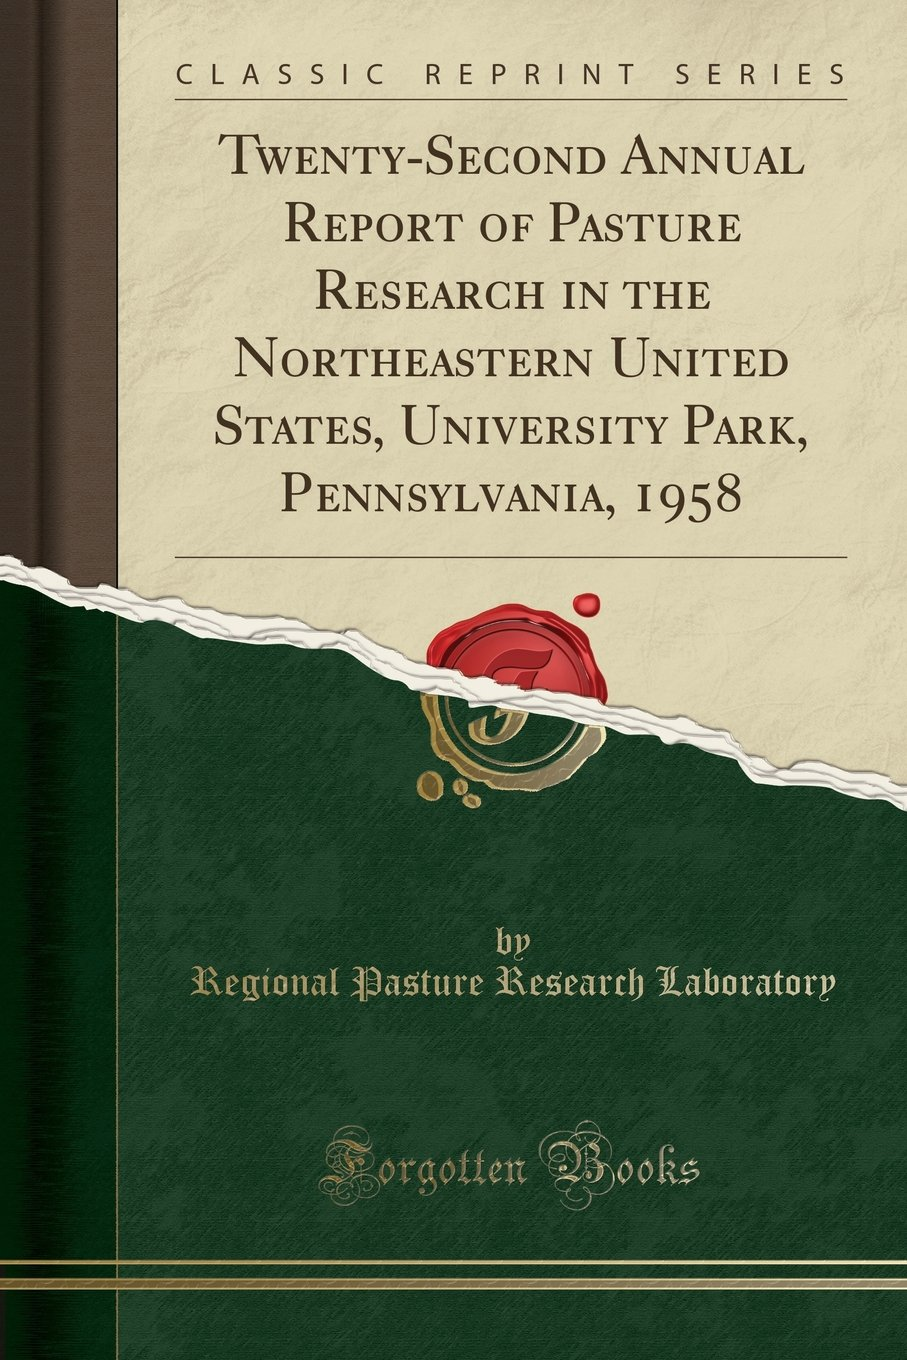 Twenty-Second Annual Report of Pasture Research in the Northeastern United States, University Park, Pennsylvania, 1958 (Classic Reprint) PDF